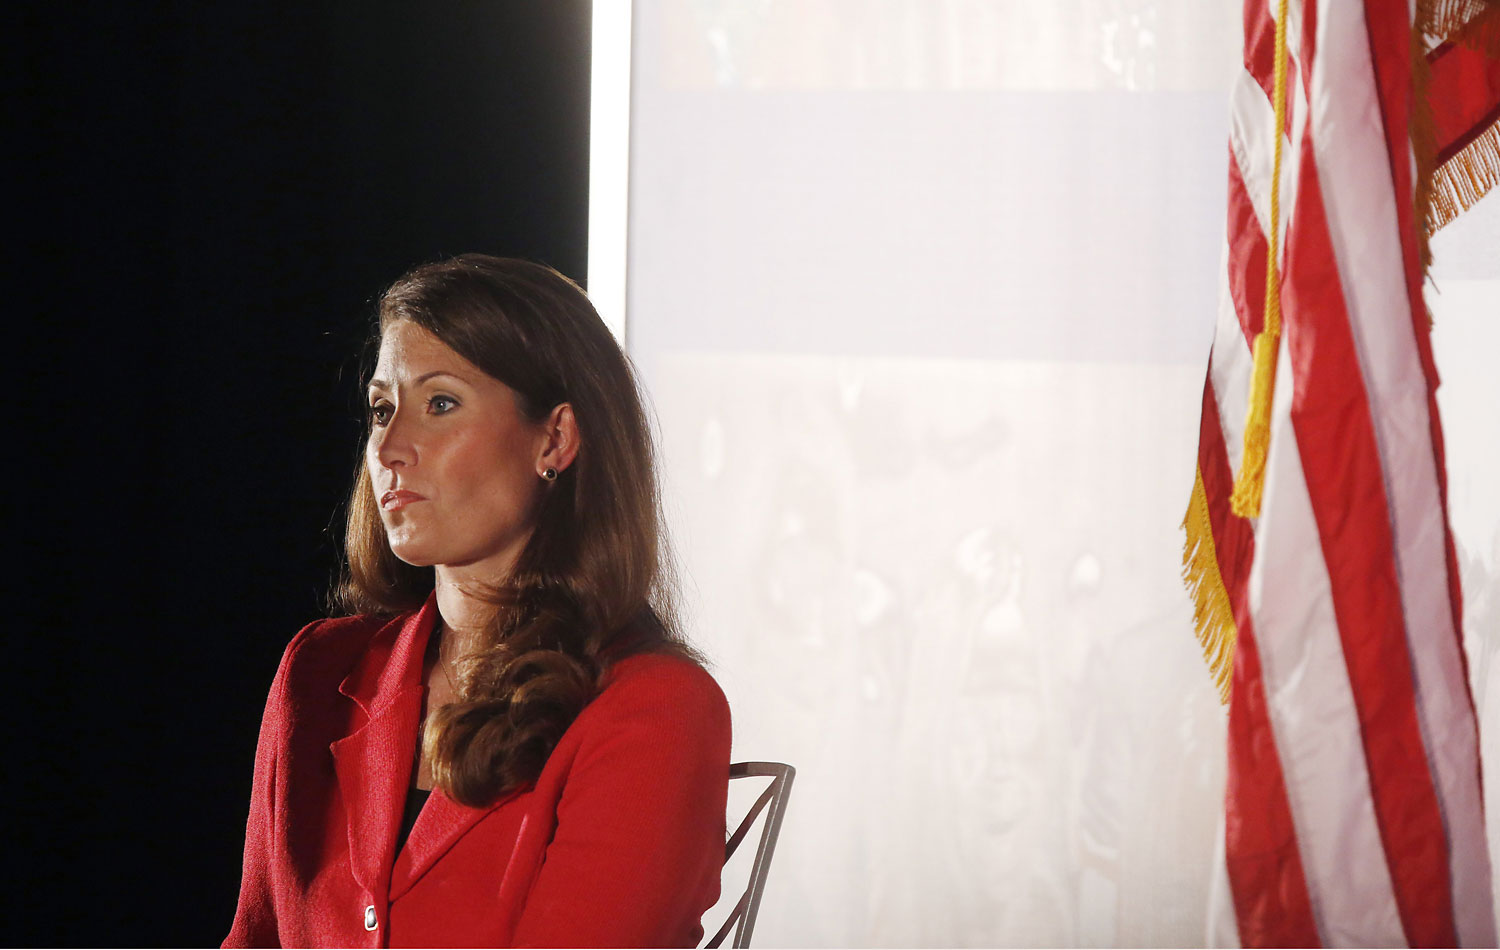 Kentucky Democratic Senate Candidate Alison Lundergan Grimes listens as Former President Bill Clinton delivers remarks during a campaign event at the Galt House Hotel on Tuesday, Feb. 25, 2014 in Louisville, Ky.